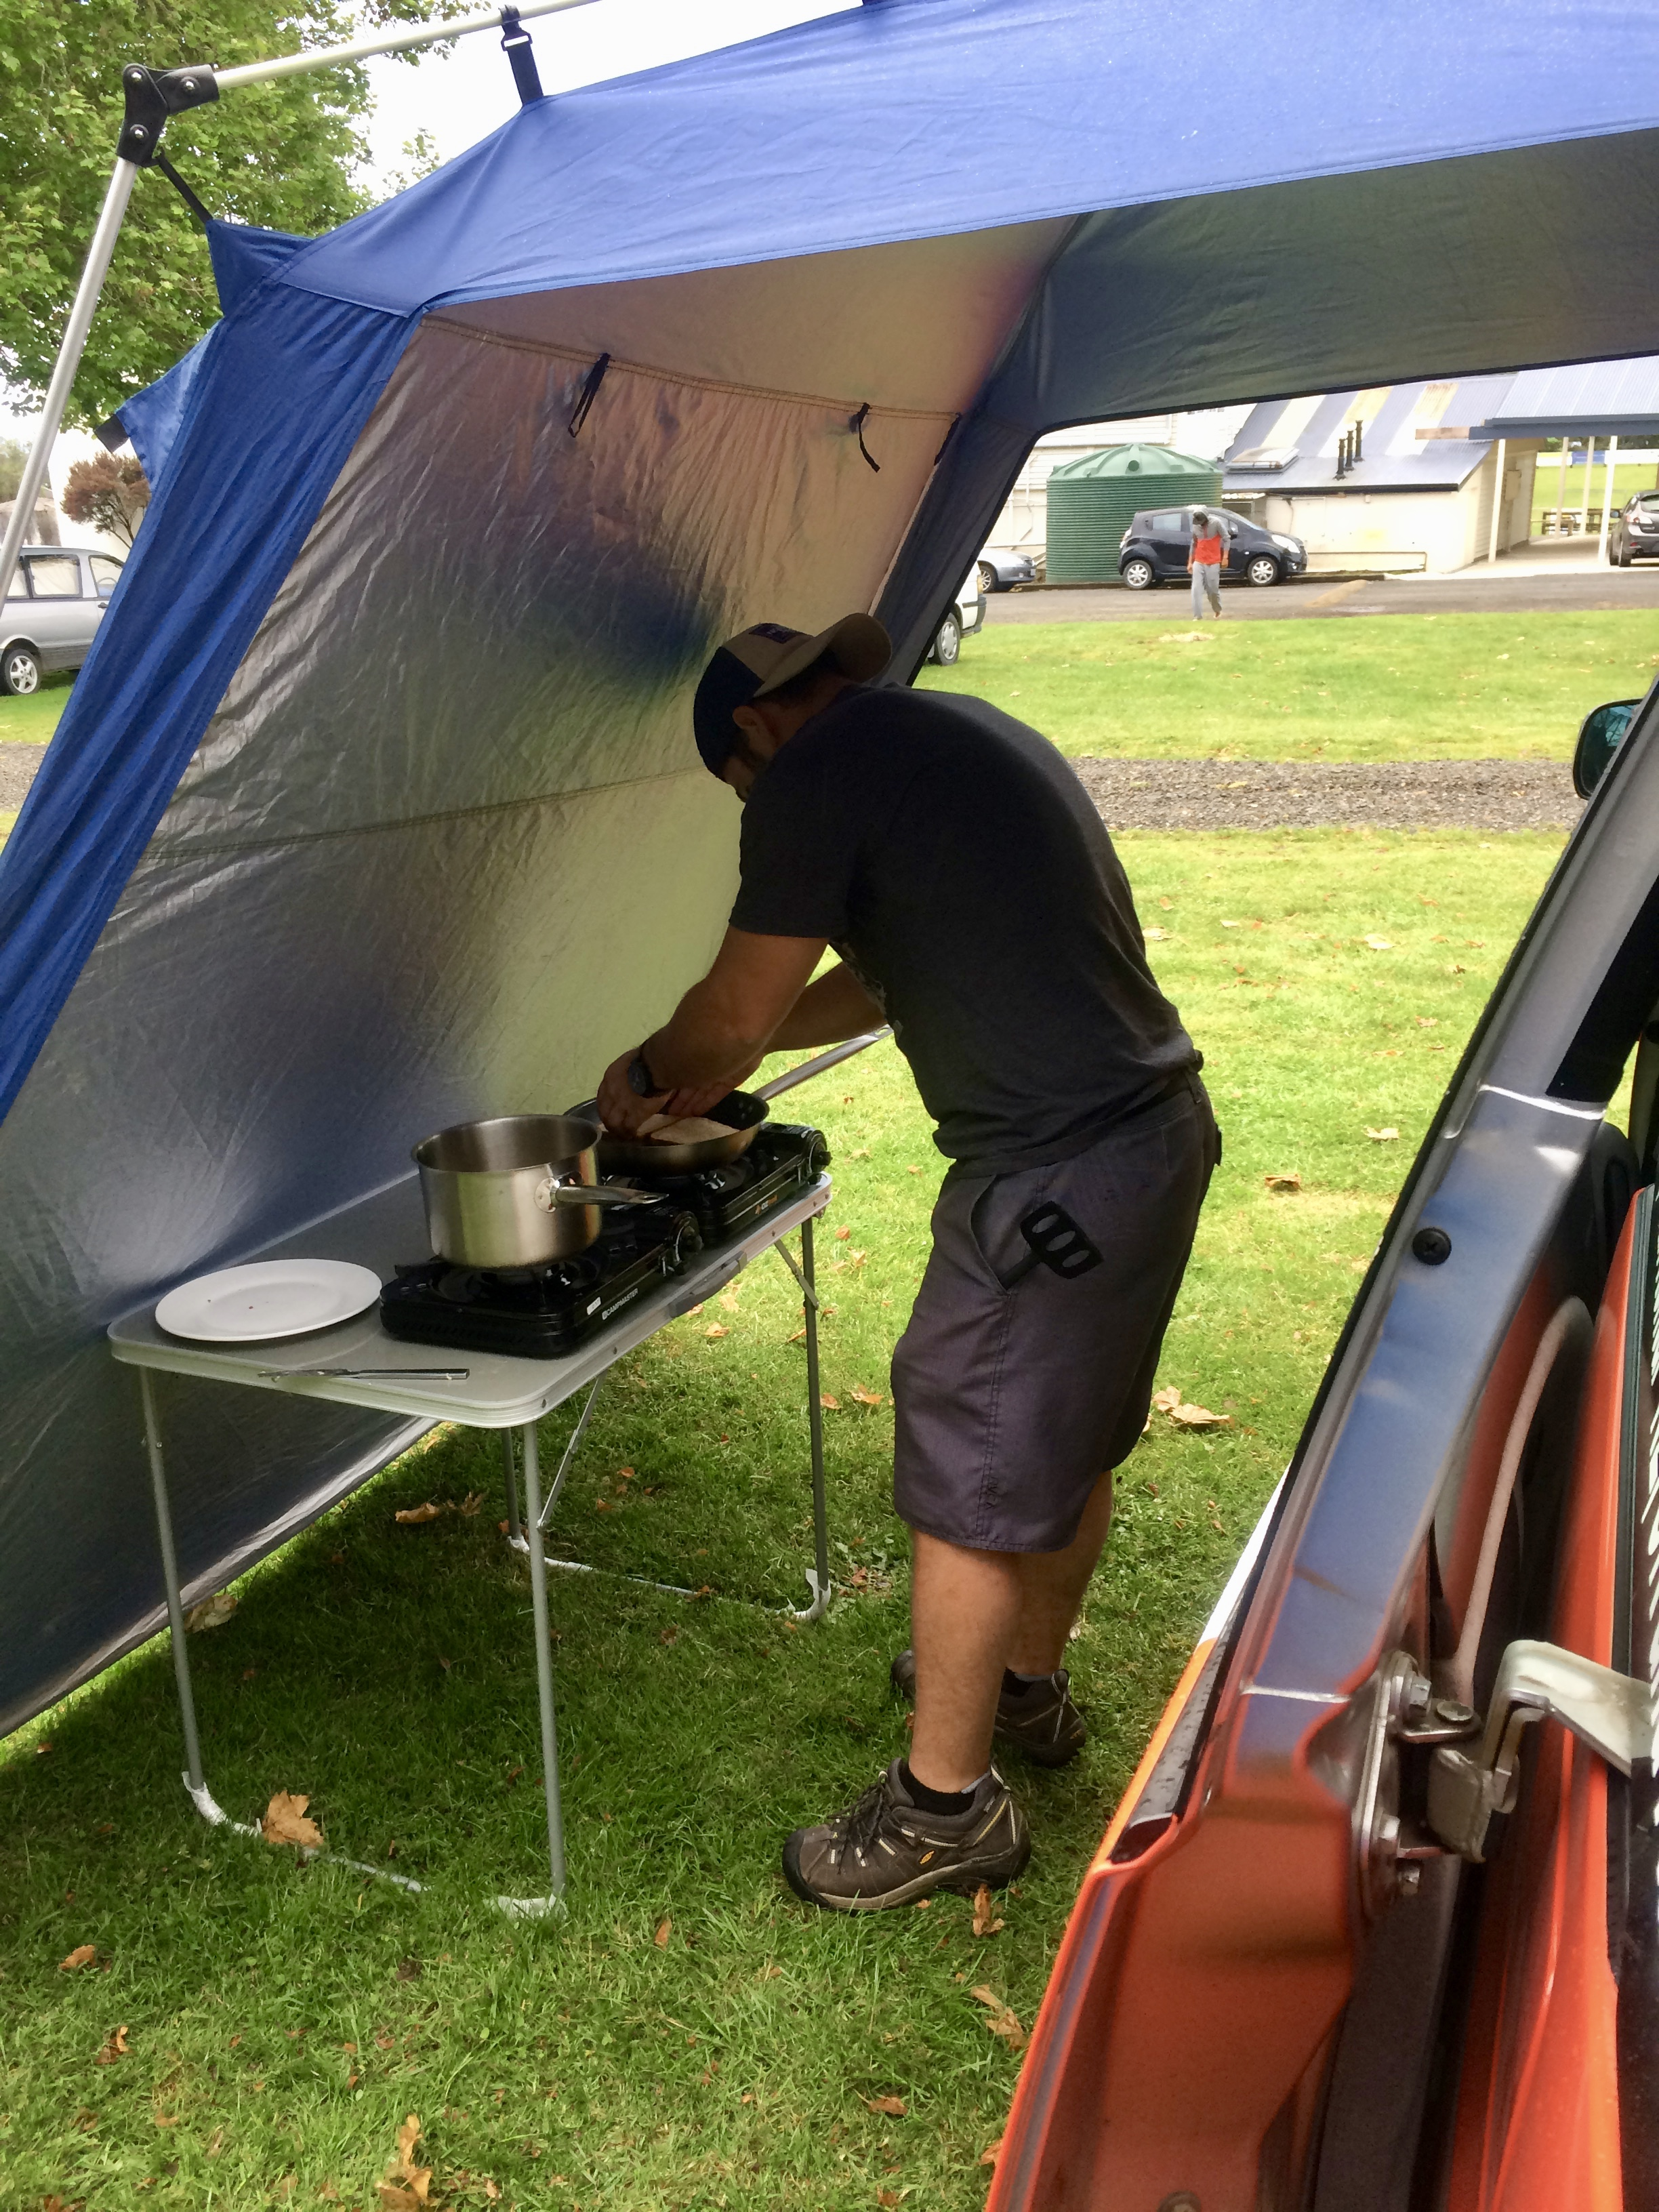 Our sweet awning set up with a little rain protection!